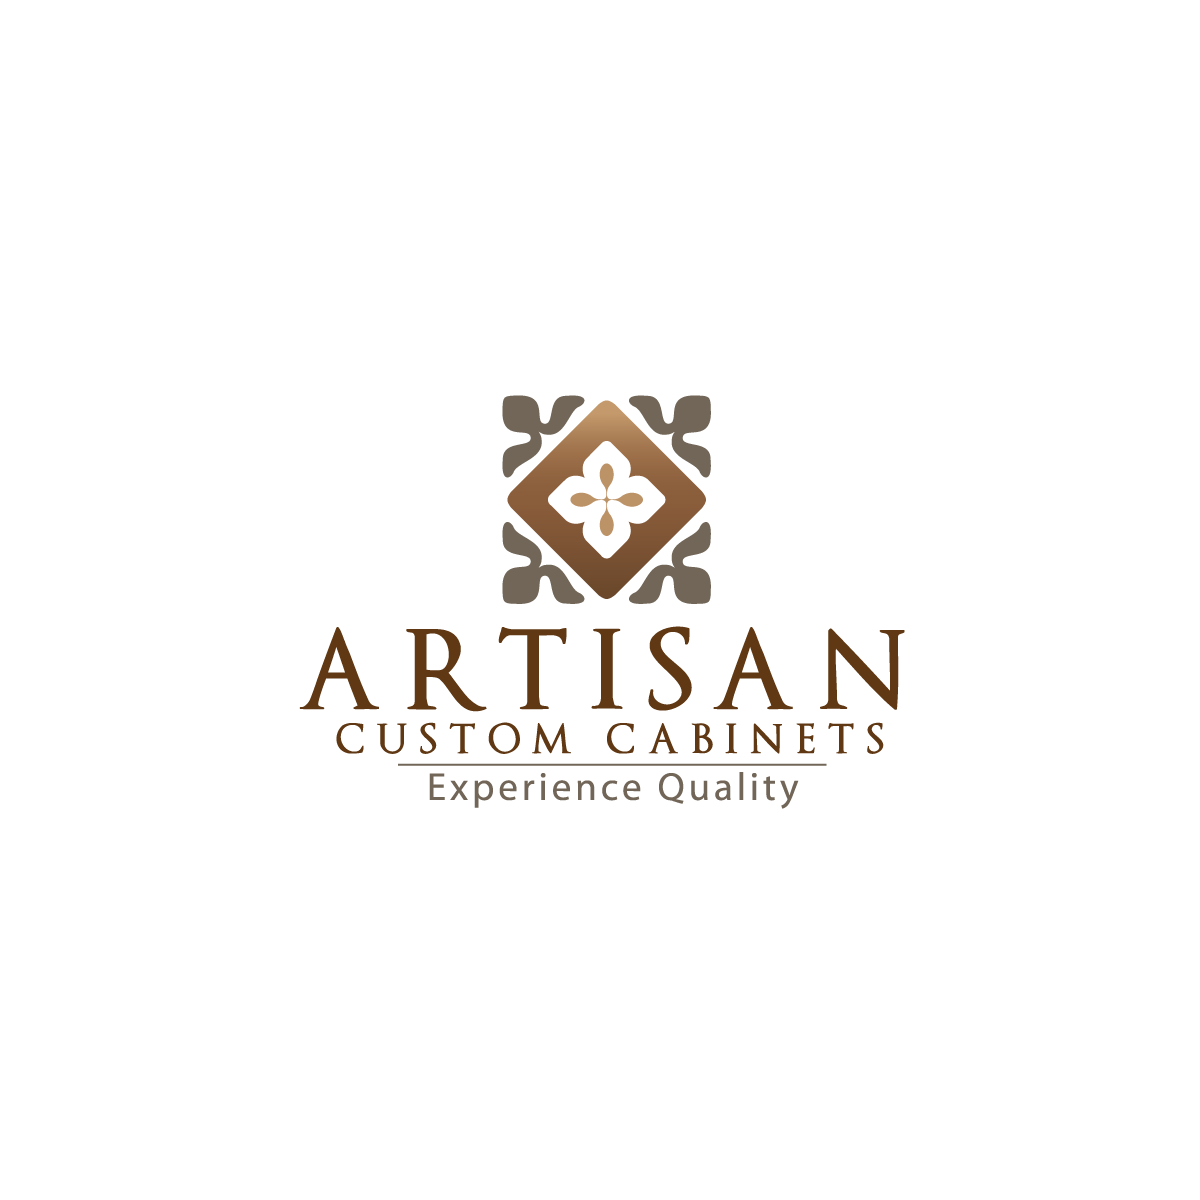 Logo Design by rockin - Entry No. 72 in the Logo Design Contest Creative Logo Design for Artisan Custom Cabinets.